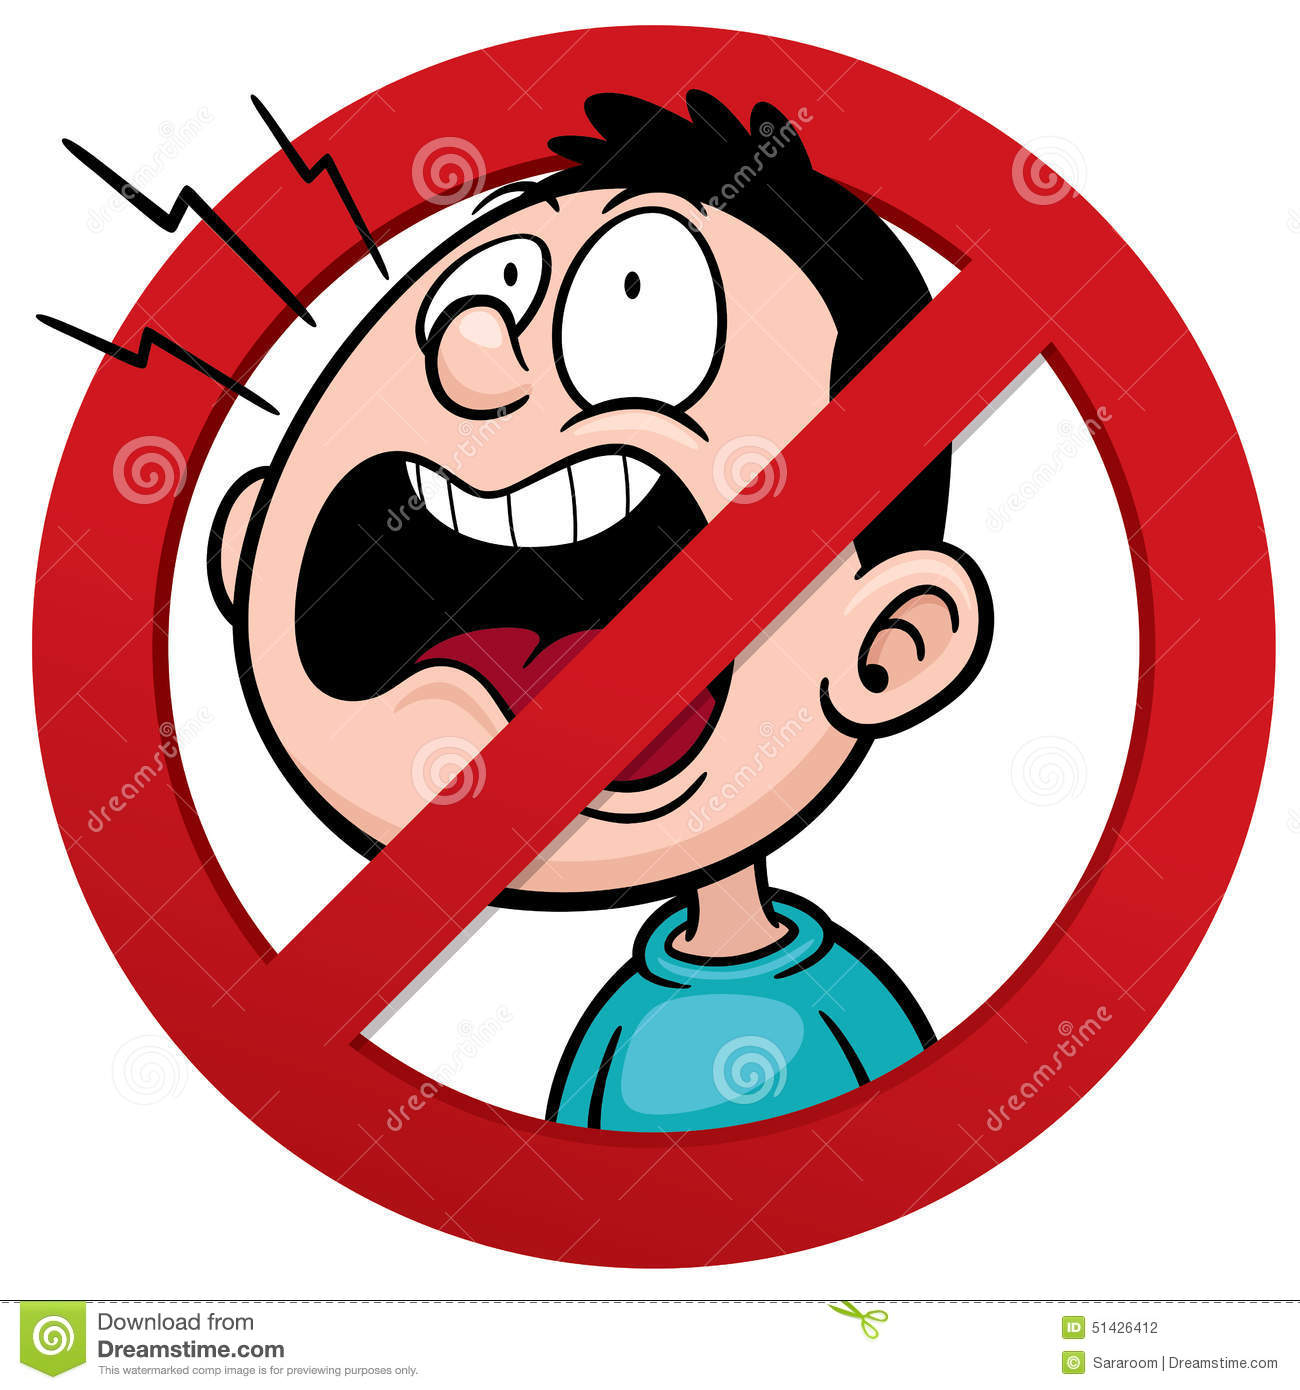 No Yelling Clipart.